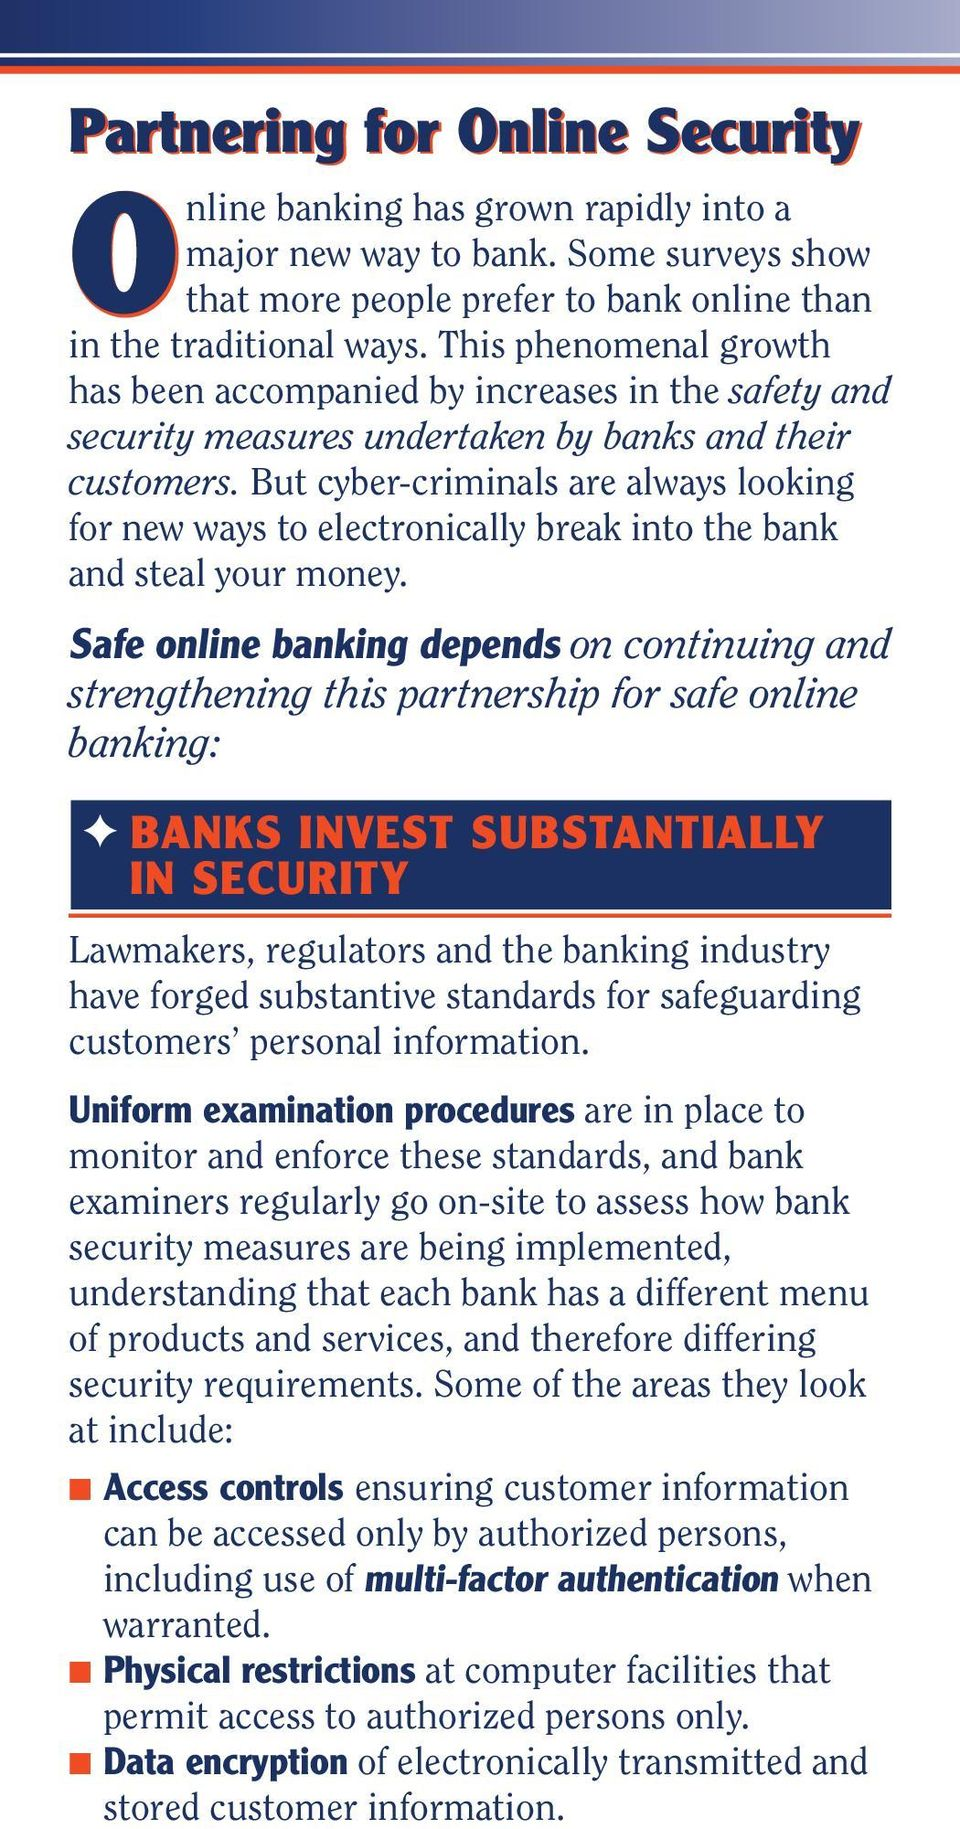 But cyber-criminals are always looking for new ways to electronically break into the bank and steal your money.